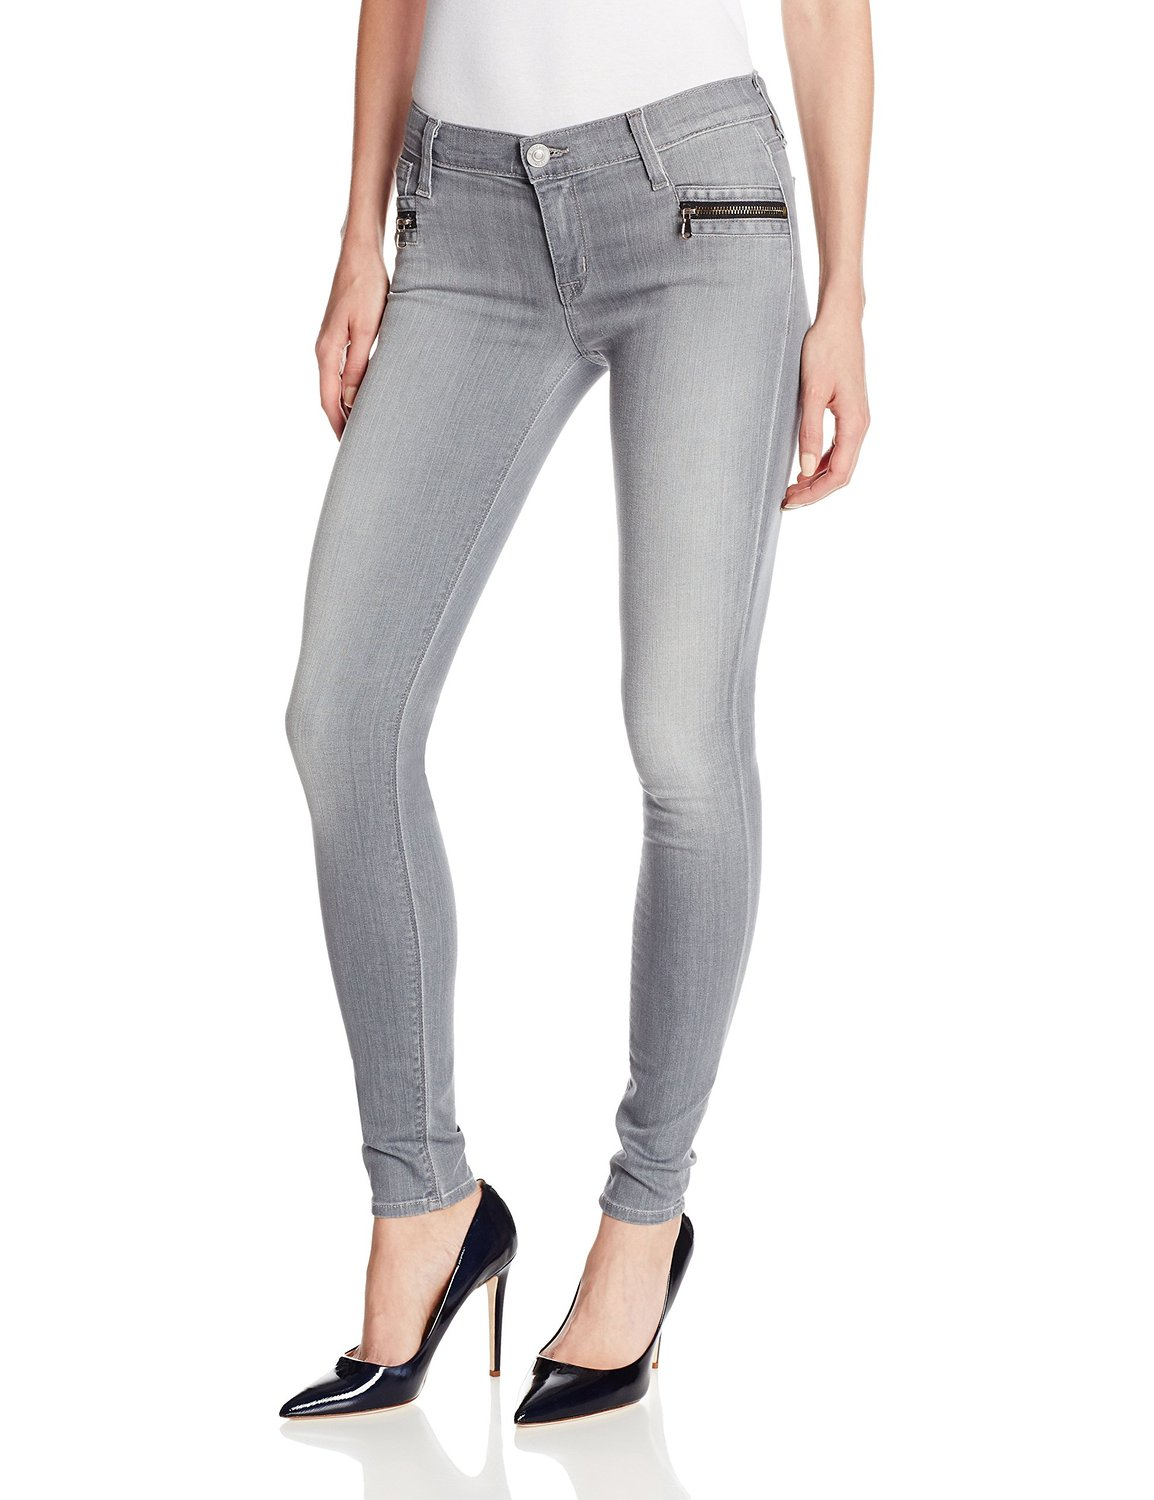 Hudson women's spark zipper skinny jean in puritan at amazon women's clothing store: